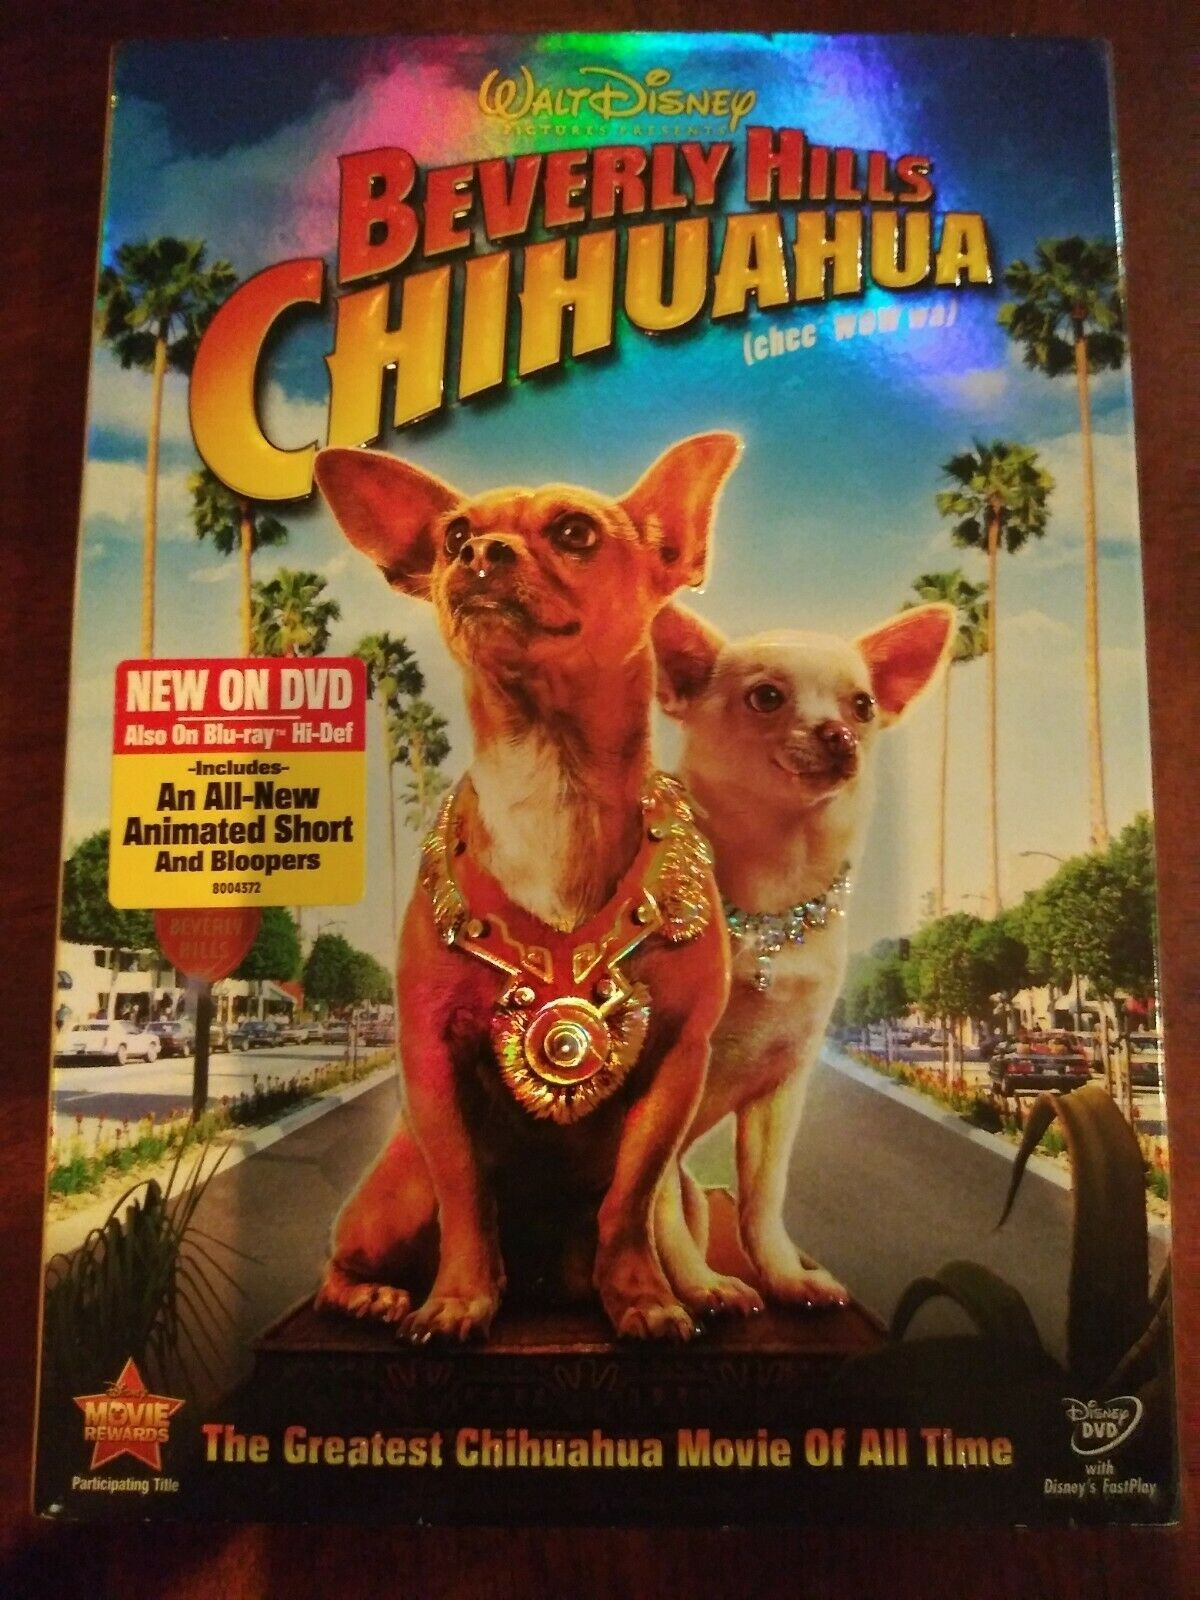 Collectible Factory Sealed Walt Disney Beverly Hills Chihuahua